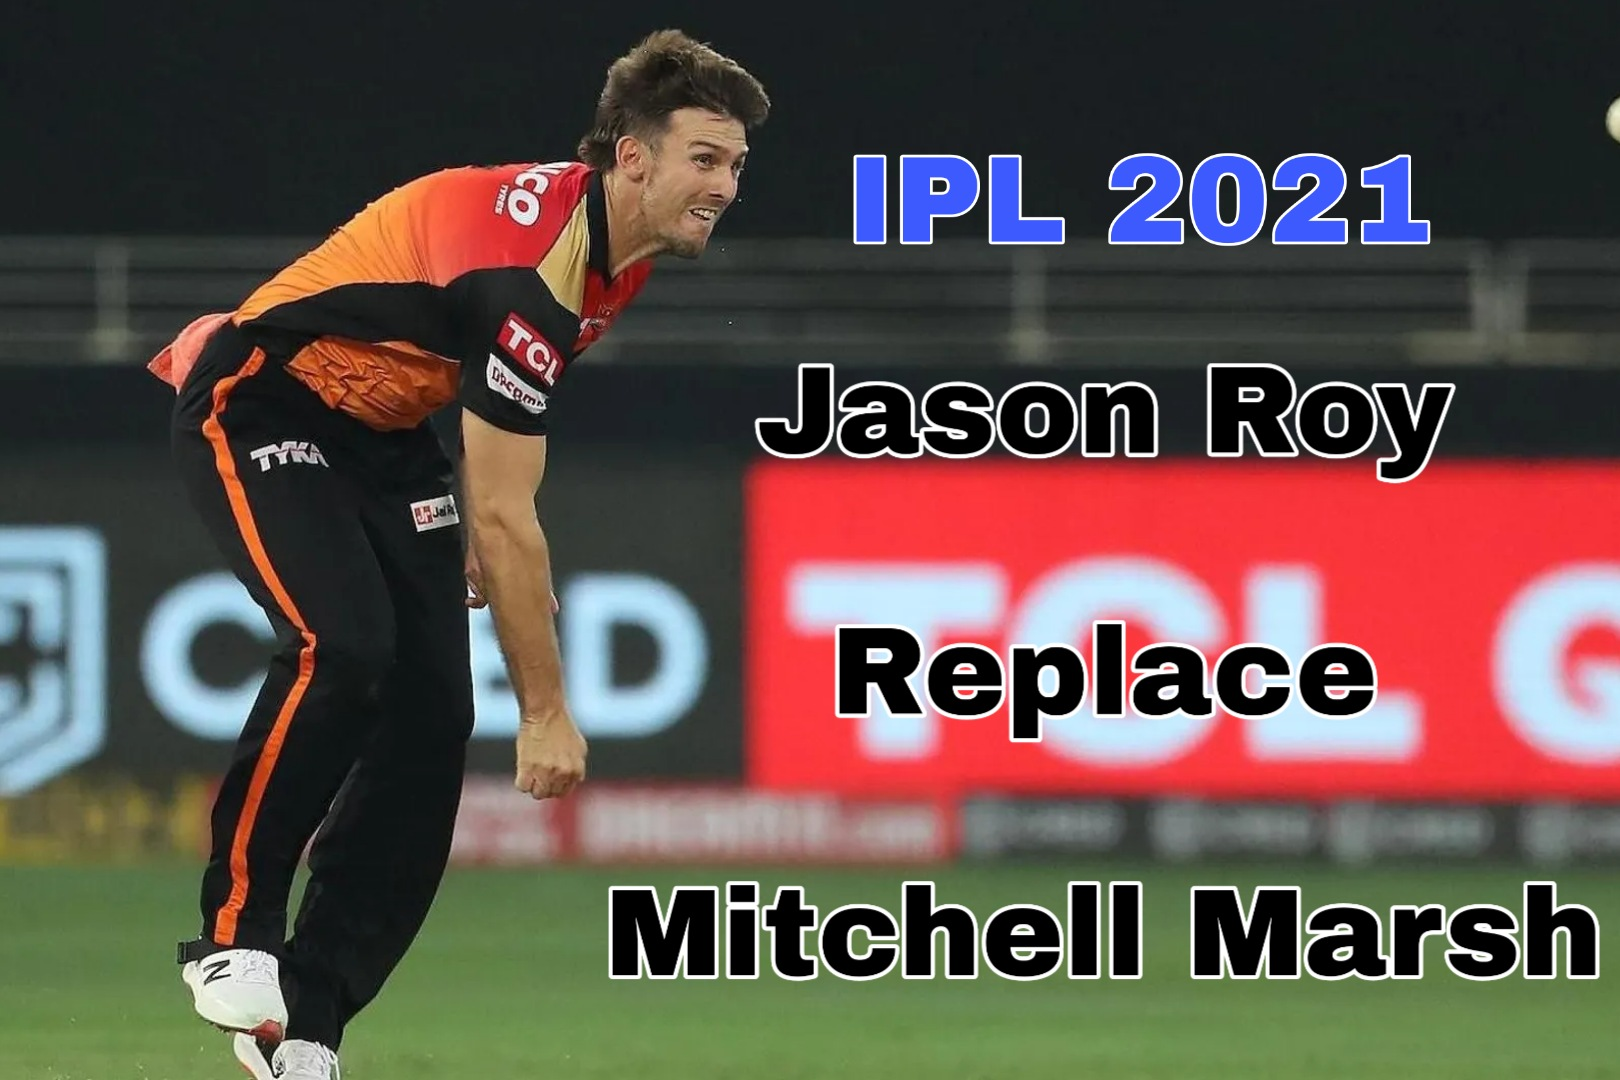 Jason Roy has signed with Sunrisers Hyderabad in place of Mitchell Marsh